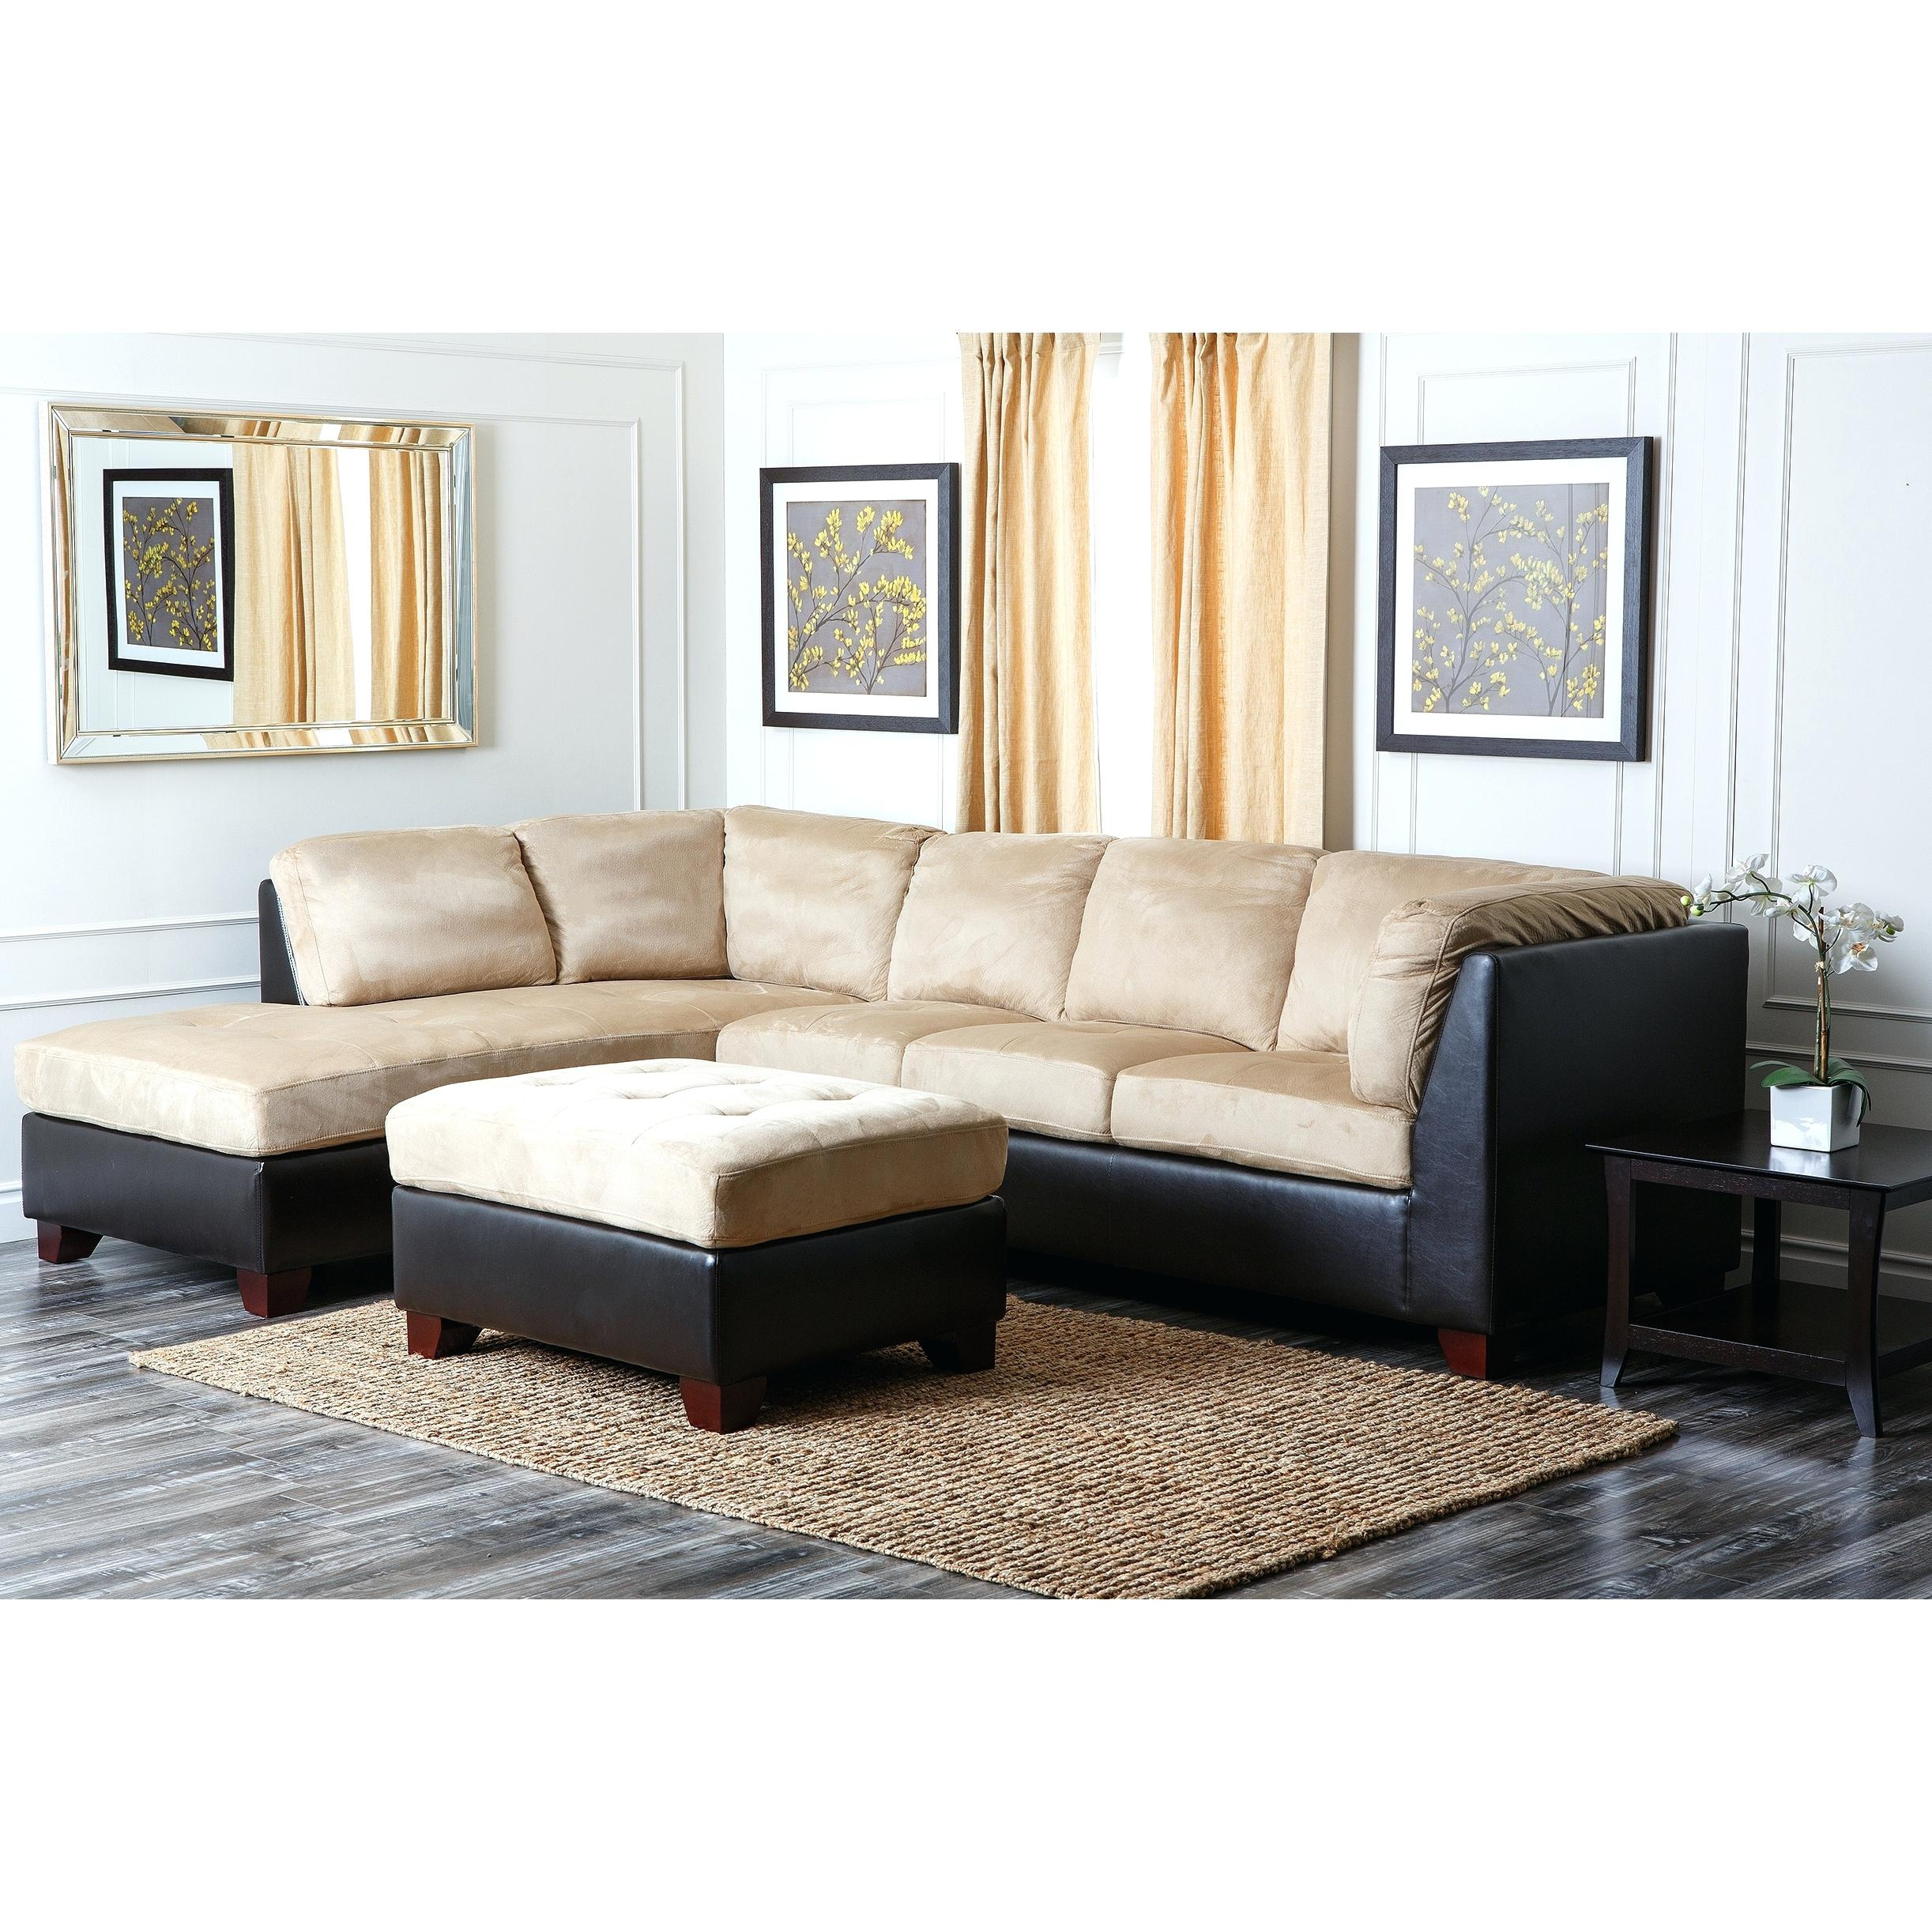 Dark Gray Ottoman Abson Living Ci D107 Crm Bailey Sectional Sofa Pertaining To Abbyson Living Charlotte Beige Sectional Sofa And Ottoman (Image 8 of 15)